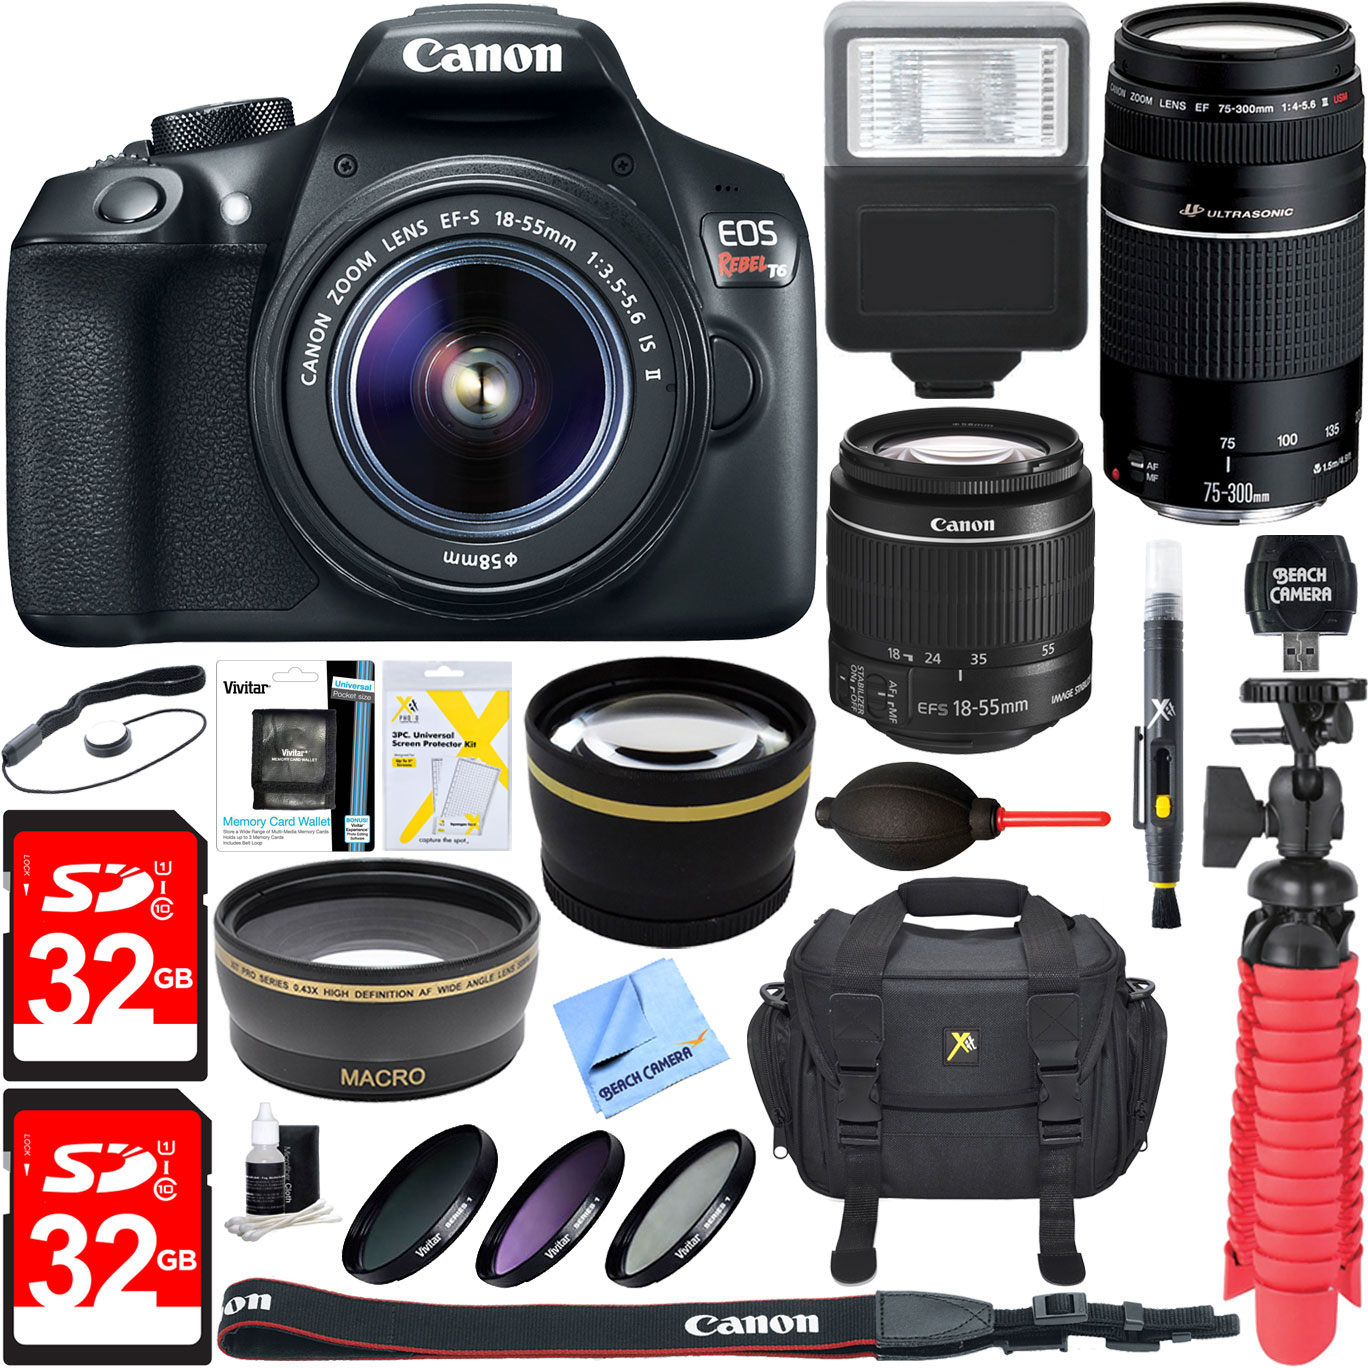 Canon EOS Rebel T6 Digital SLR Camera w/ EF-S 18-55mm IS + EF-S 75-300mm Lens Bundle includes Camera, Lenses, Bag, Filter Kit, Memory Cards, Tripod, Flash, Cleaning Kit, Beach Camera Cloth and More